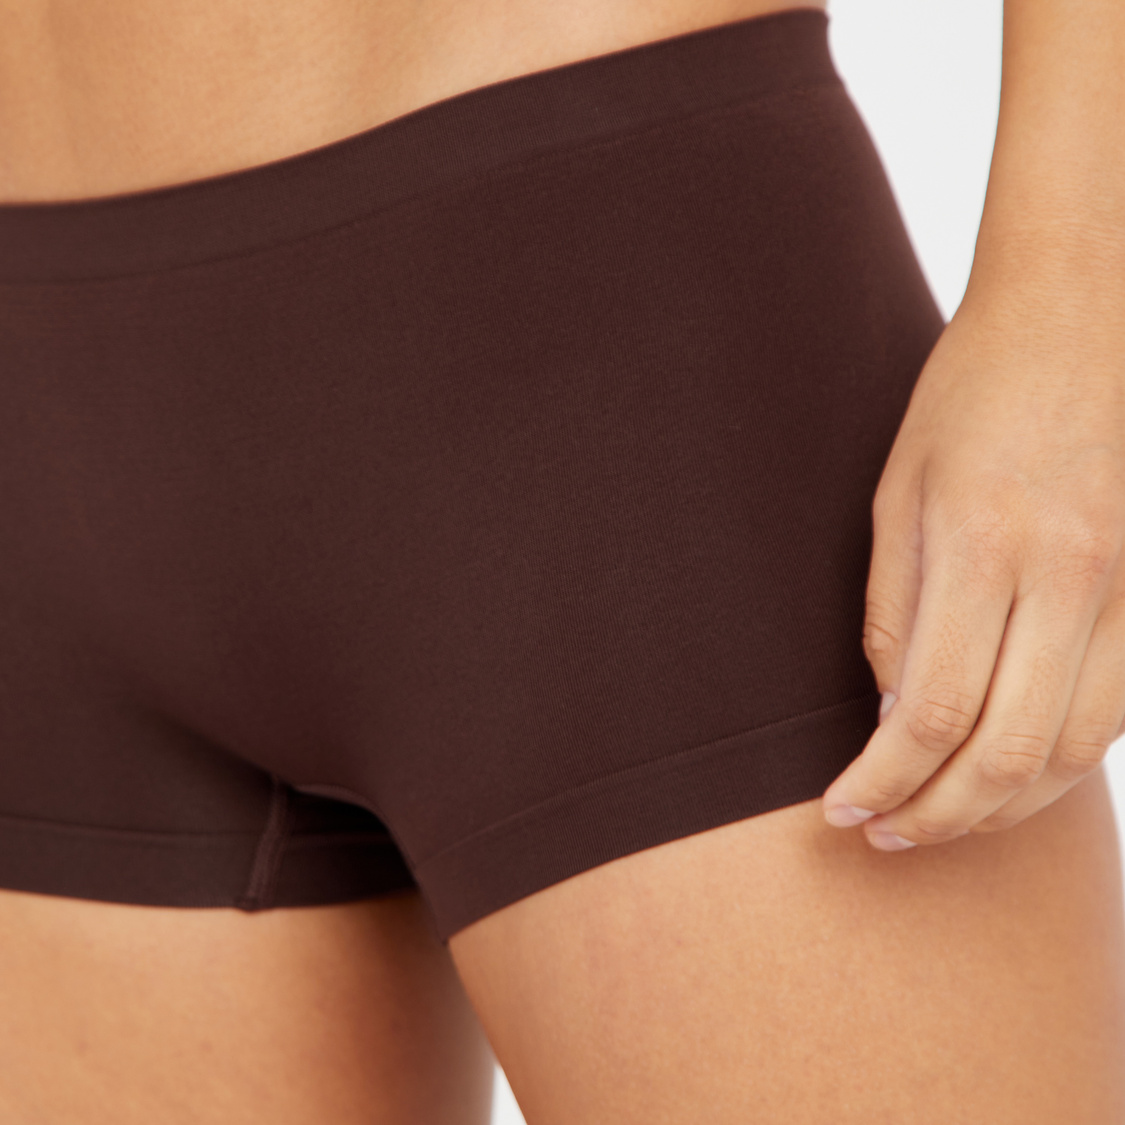 Set of 2 - Textured Shaping Briefs with Elasticated Waistband